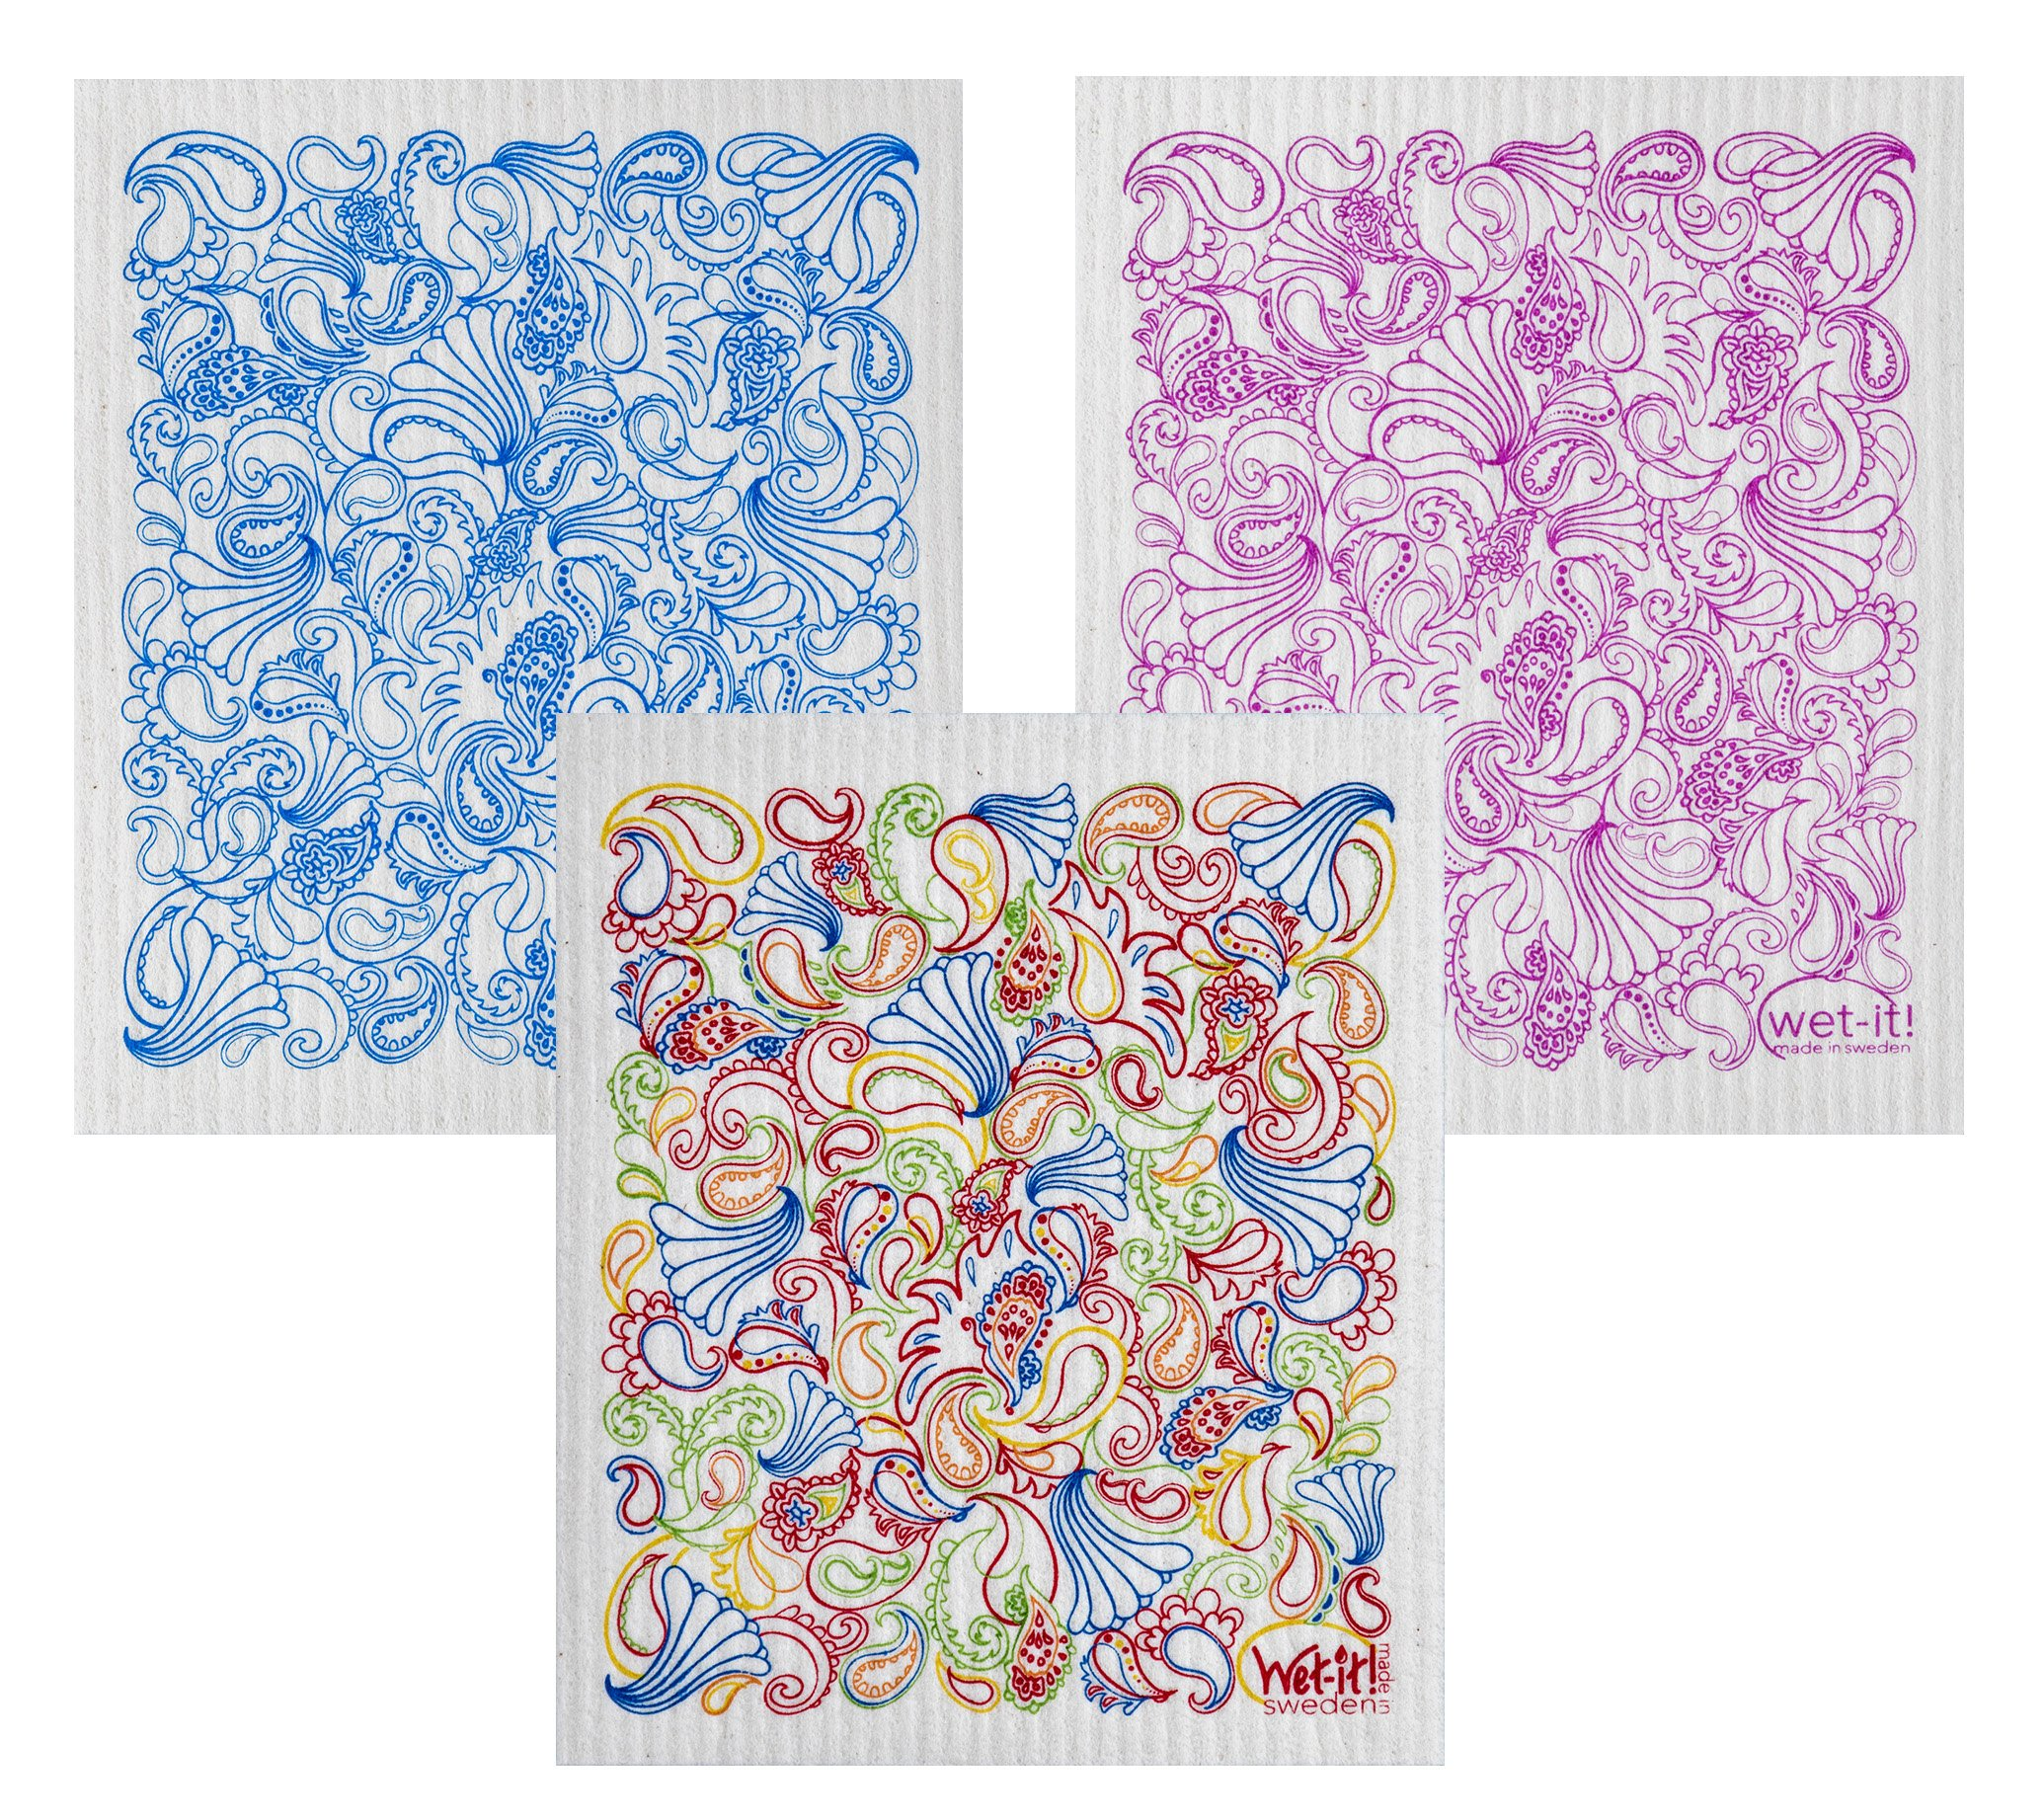 Wet-It Swedish Dishcloth Set of 3 (Paisley in Blue, Pink and Multicolors)